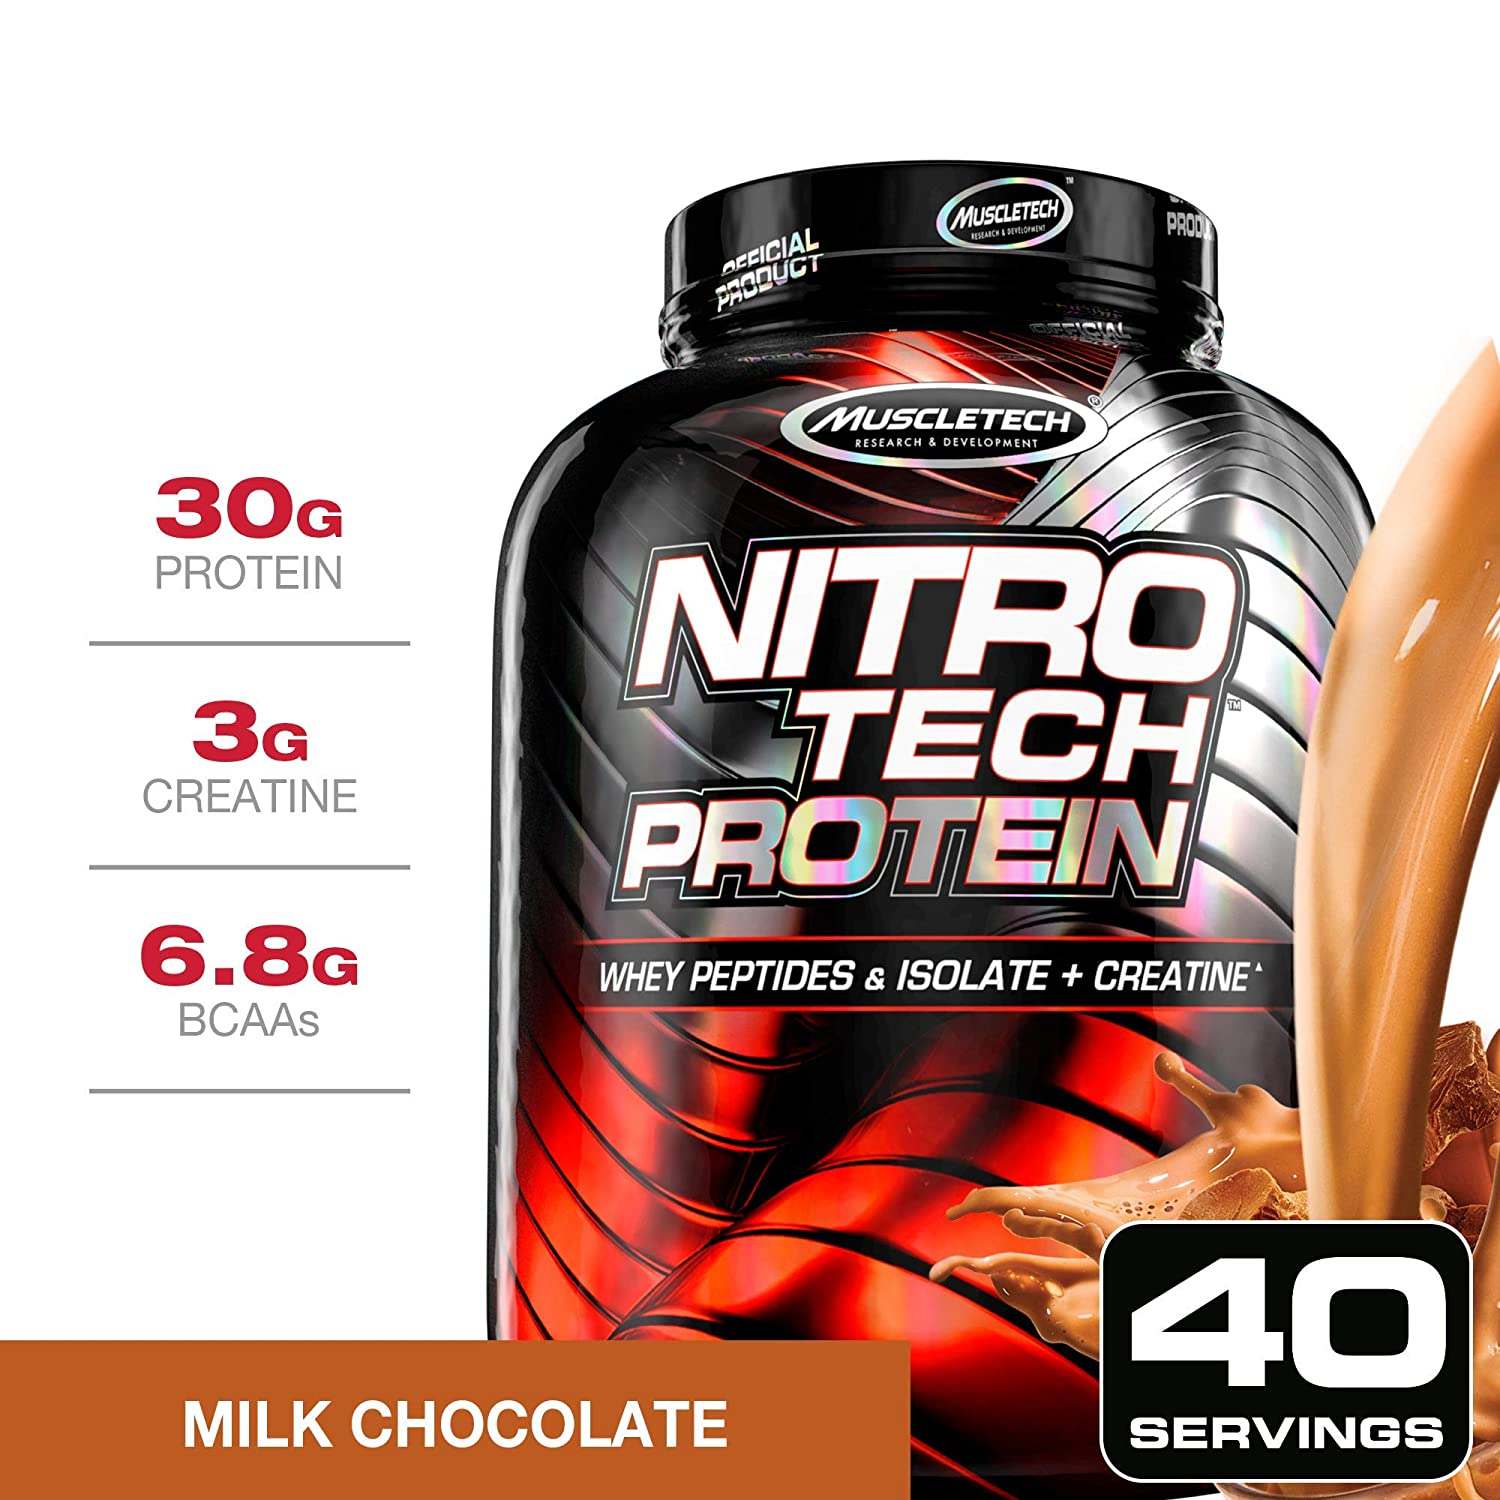 NitroTech Protein Powder Plus Creatine Monohydrate Muscle Builder, 100 Whey Protein with Whey Isolate, Milk Chocolate, 40 Servings 4lbs